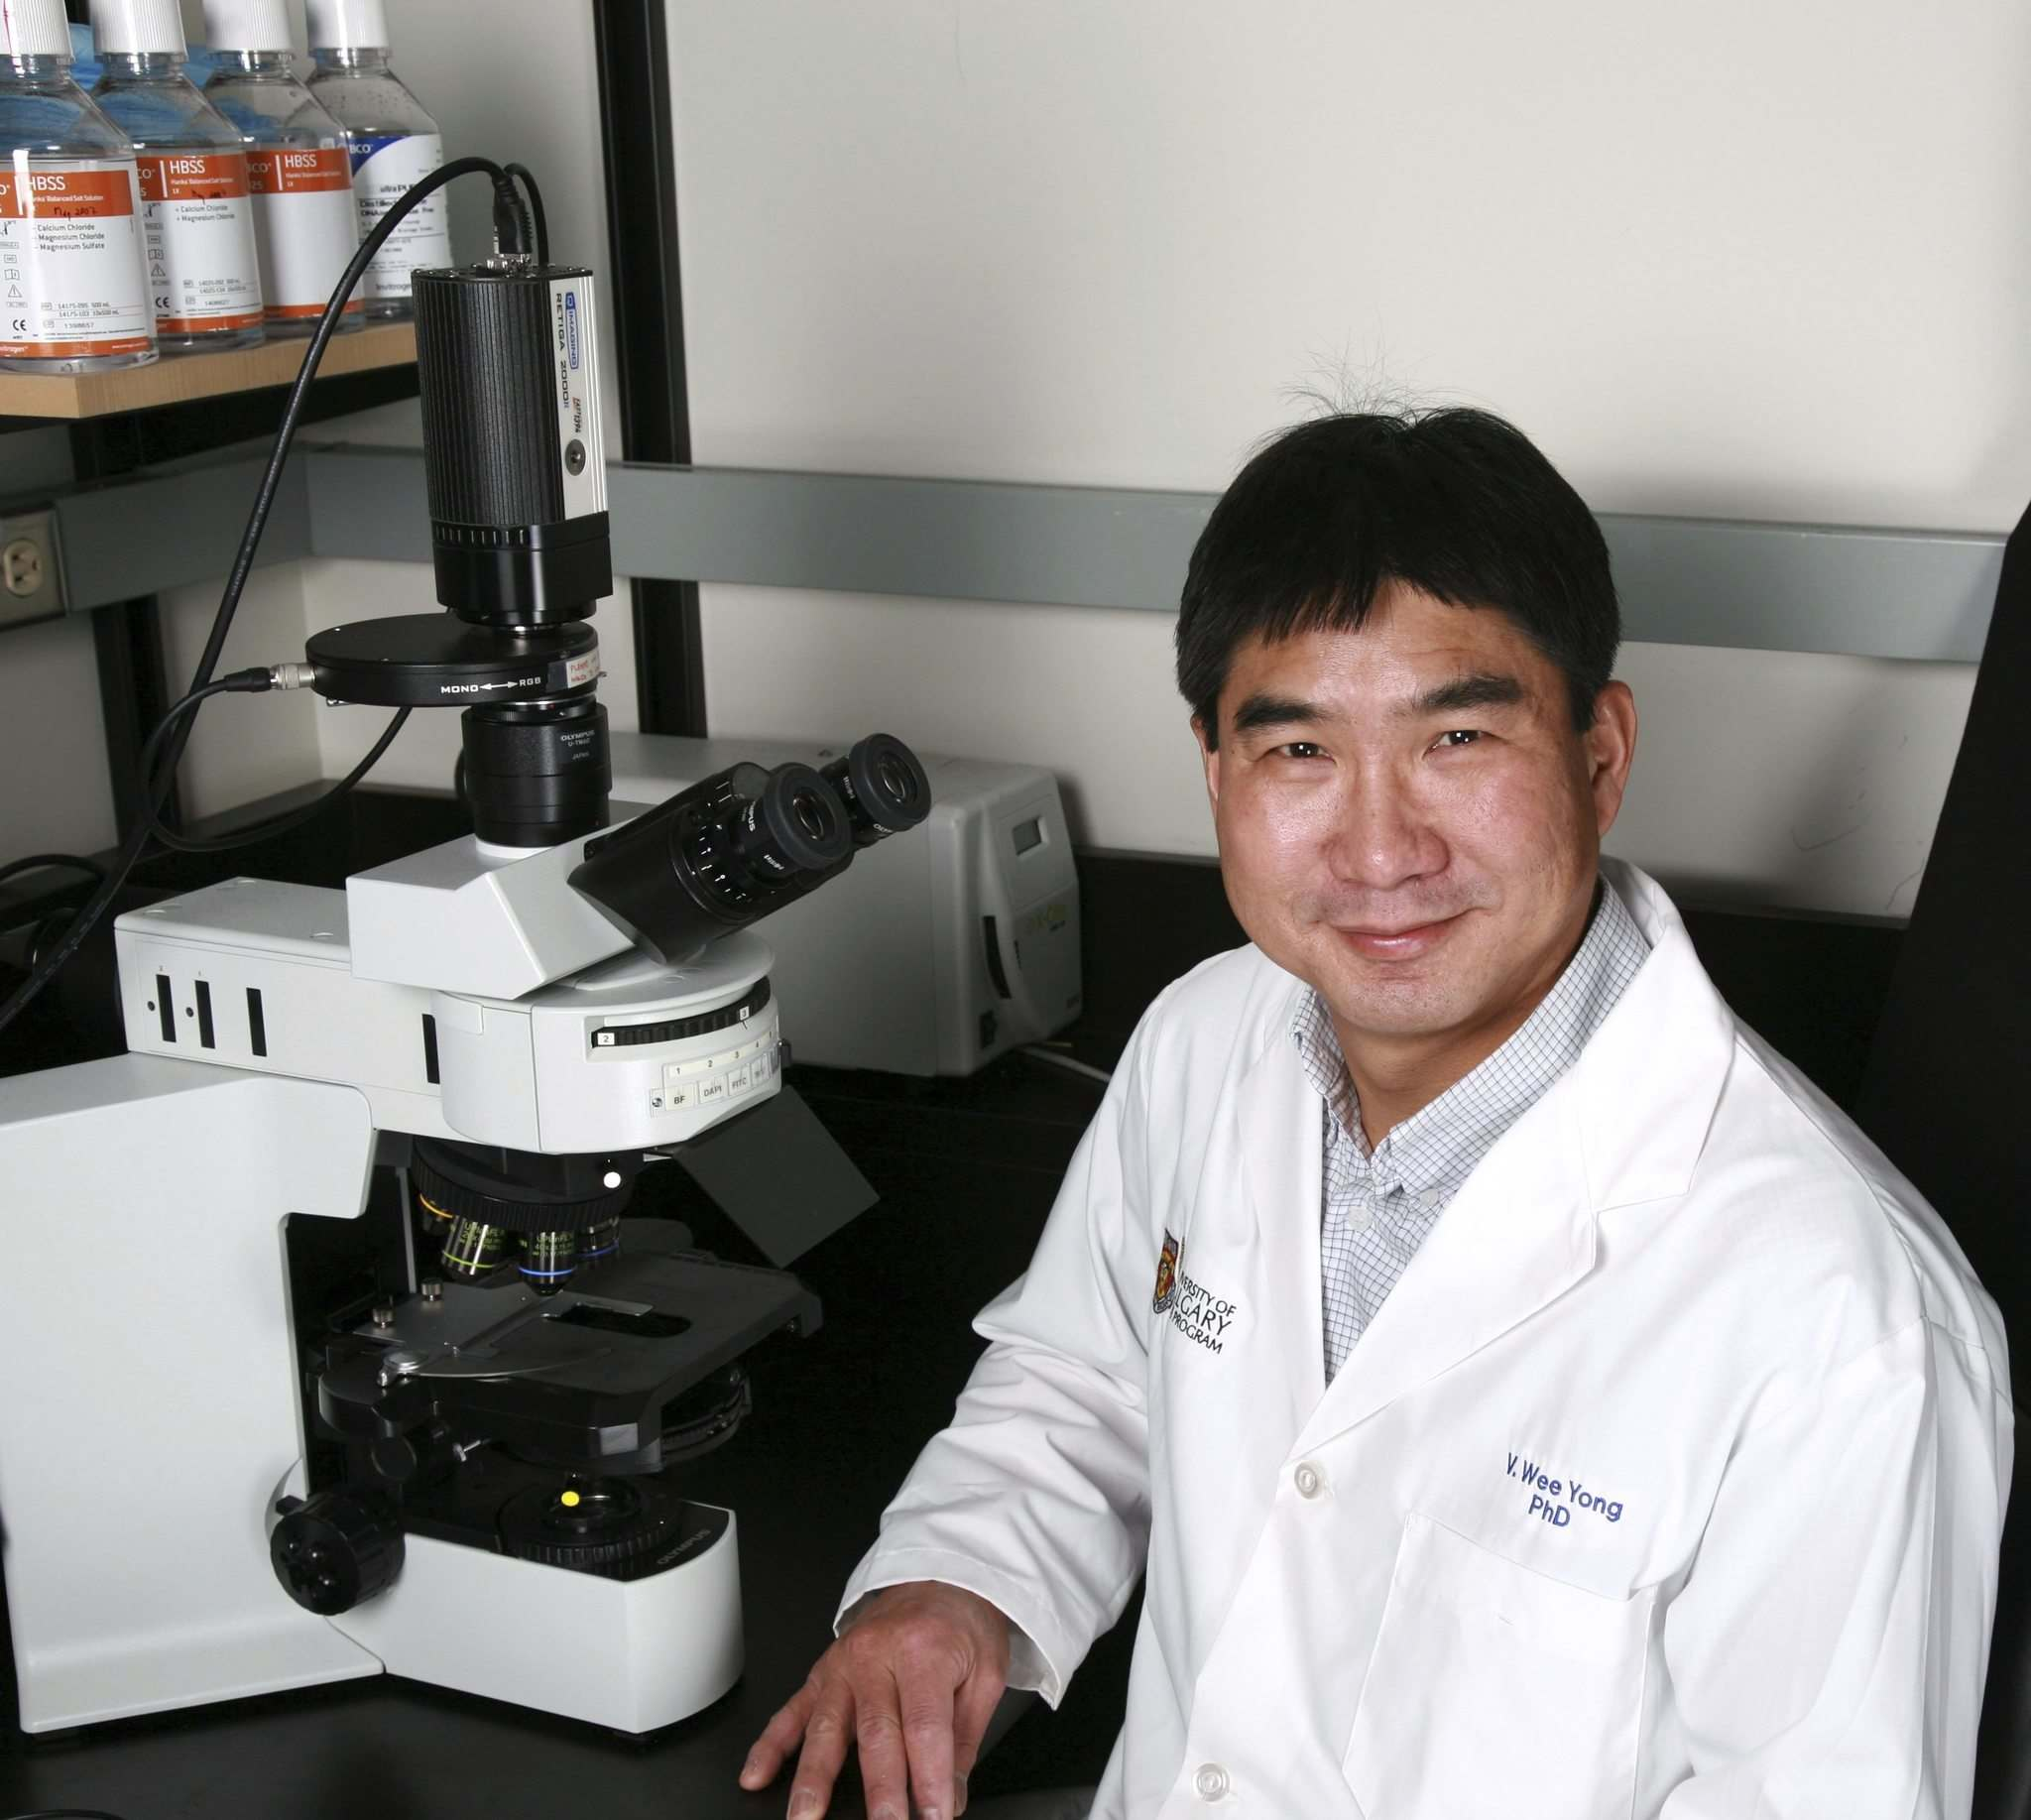 SUPPLIED</p><p>New treatments promote the repair of myelin, which MS ravages, says Dr. Wee Yong.</p></p>